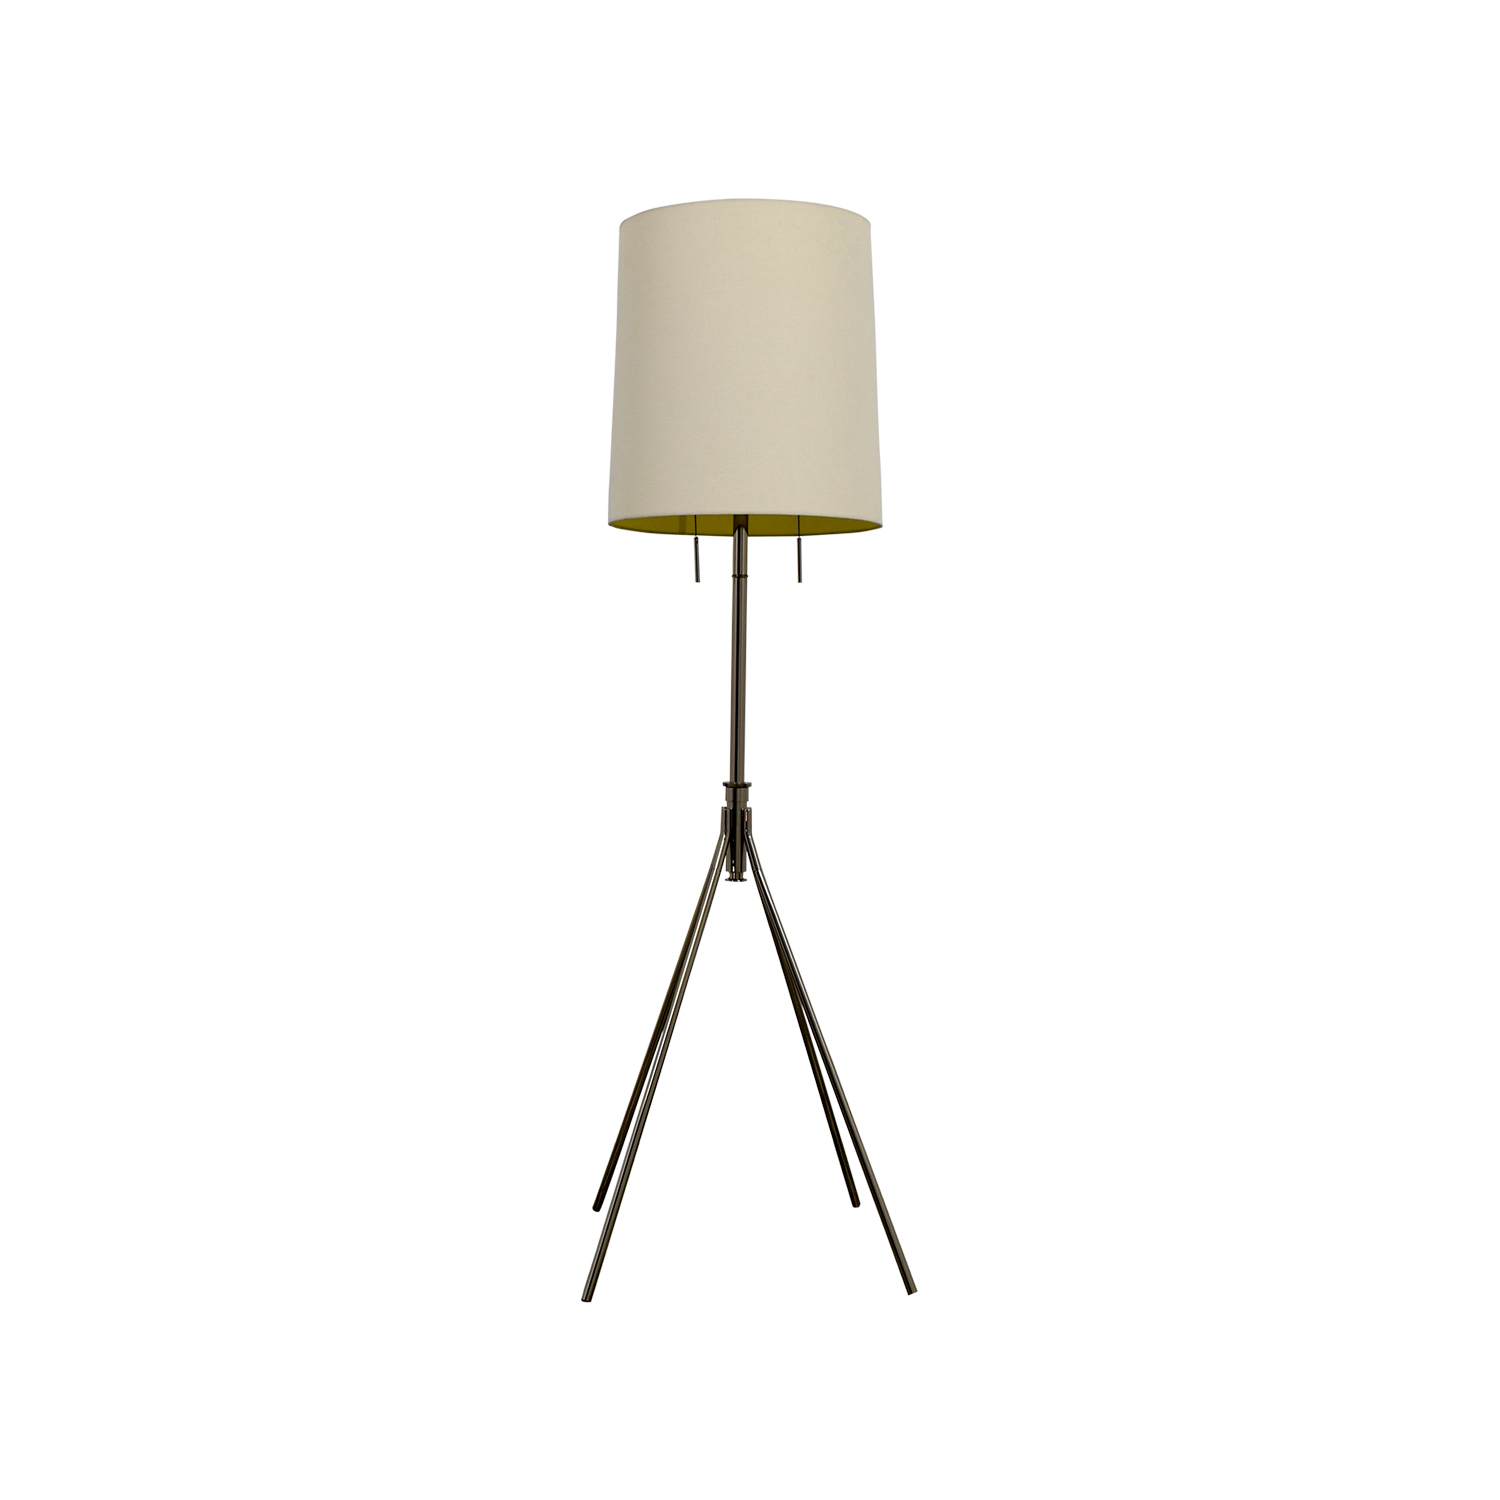 West Elm West Elm Tripod Adjustable Floor Lamp Nyc ...